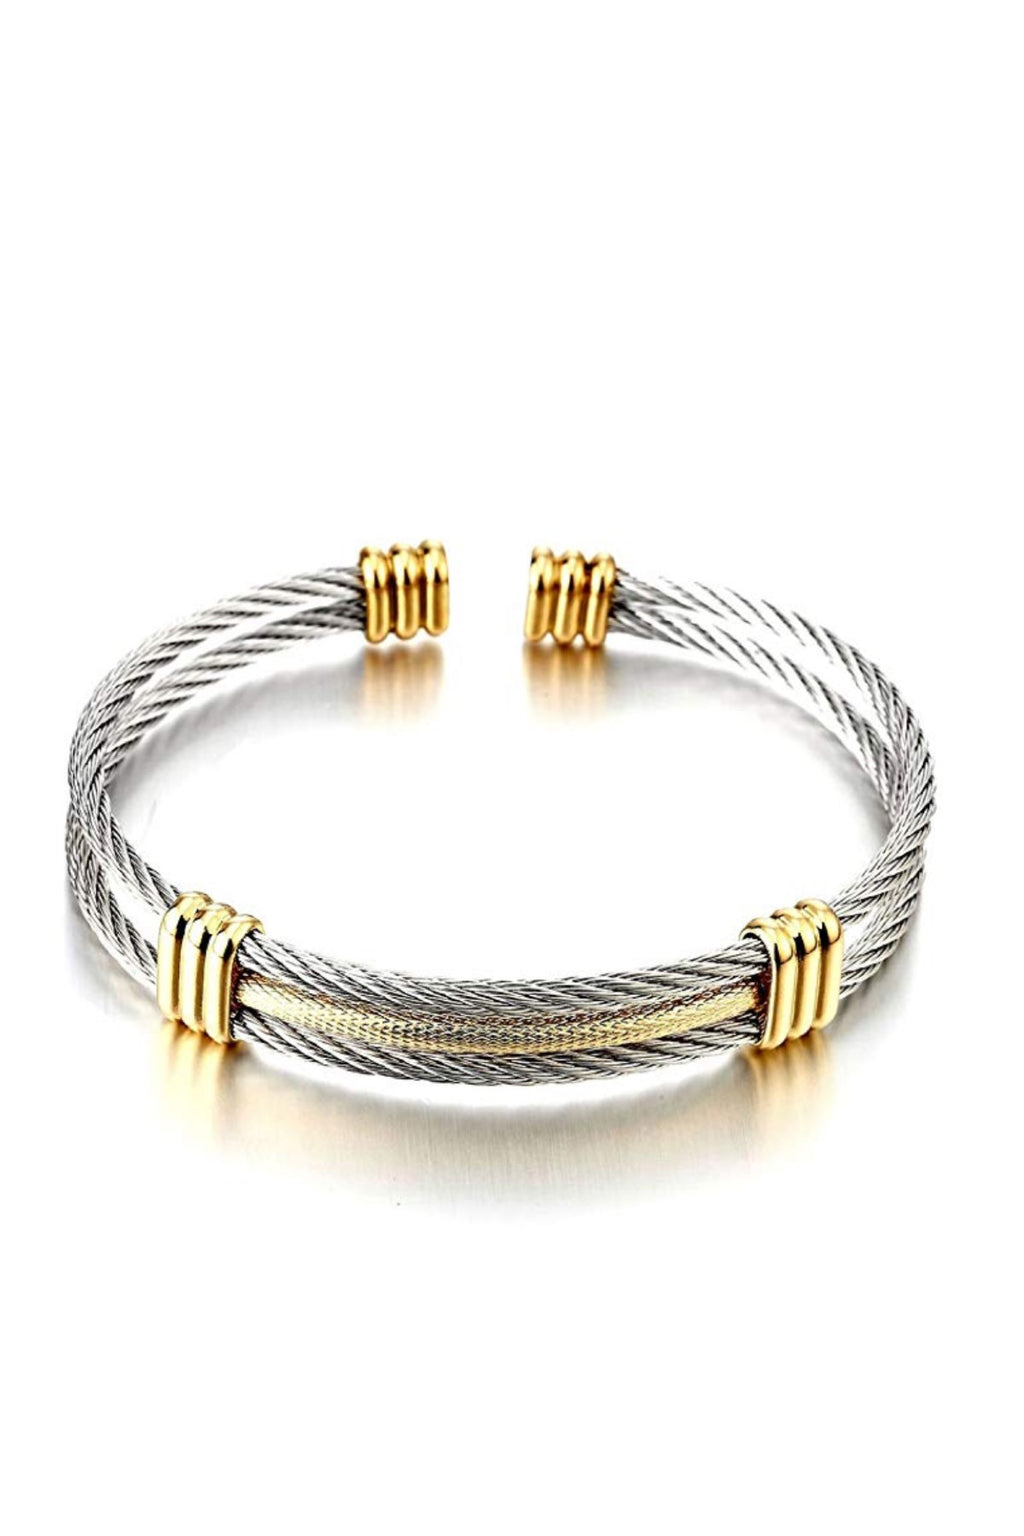 18k Gold & Silver Two Tone Cable Cuff Bangle